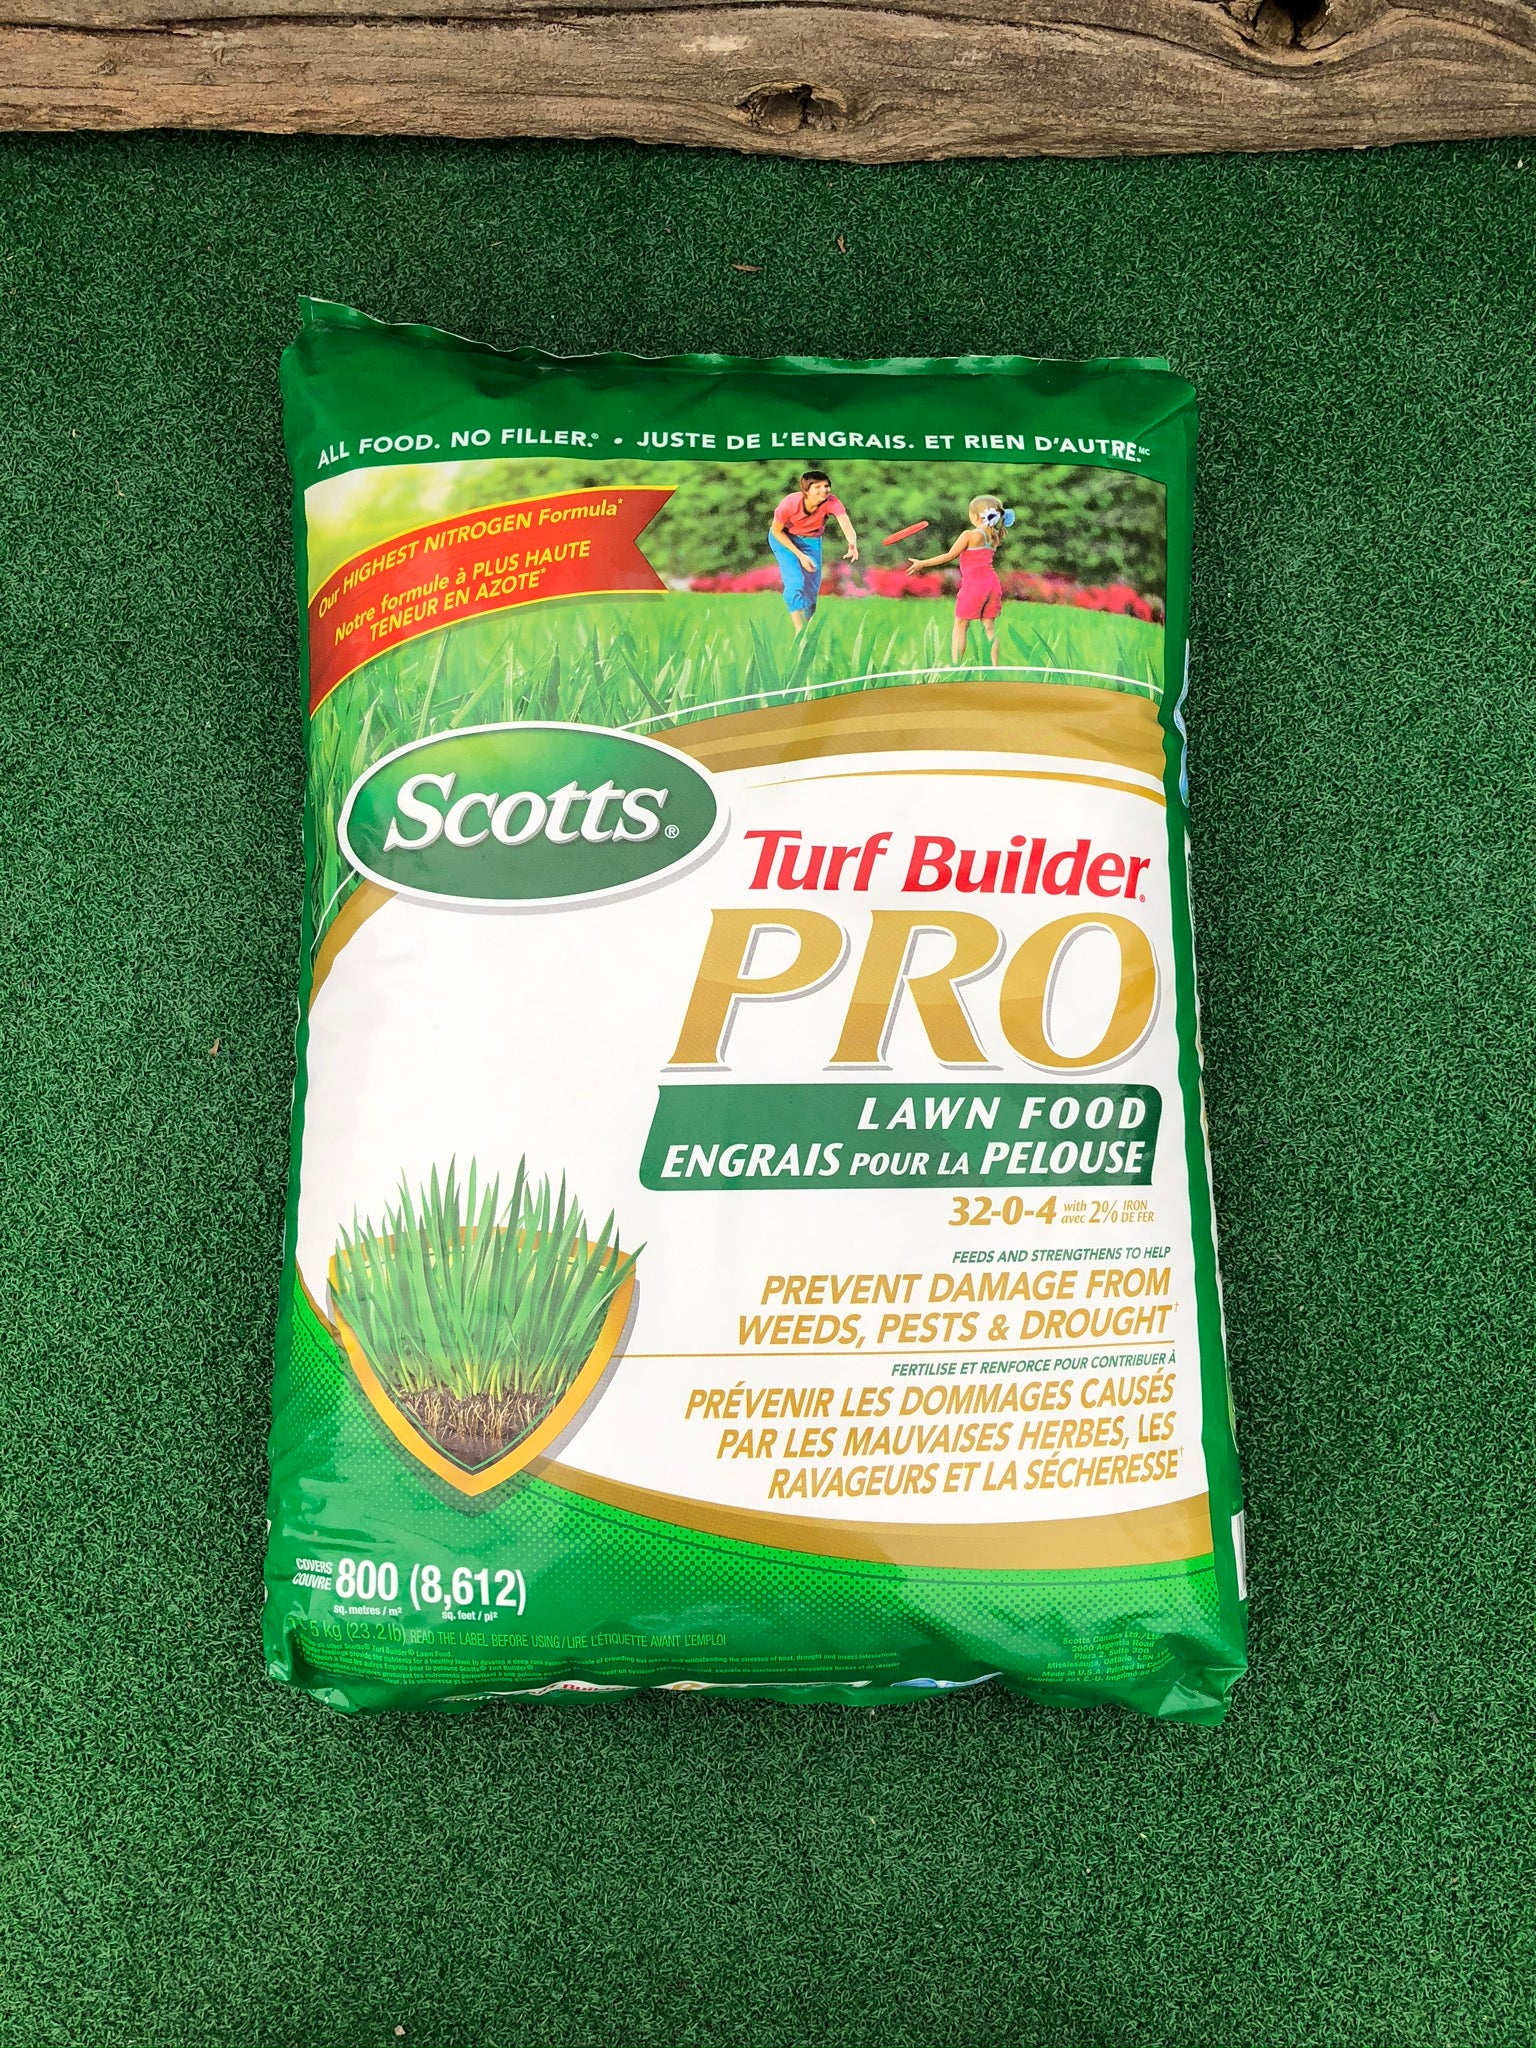 Turf Builder Pro Lawn Food (34-0-4) (4415576473683)